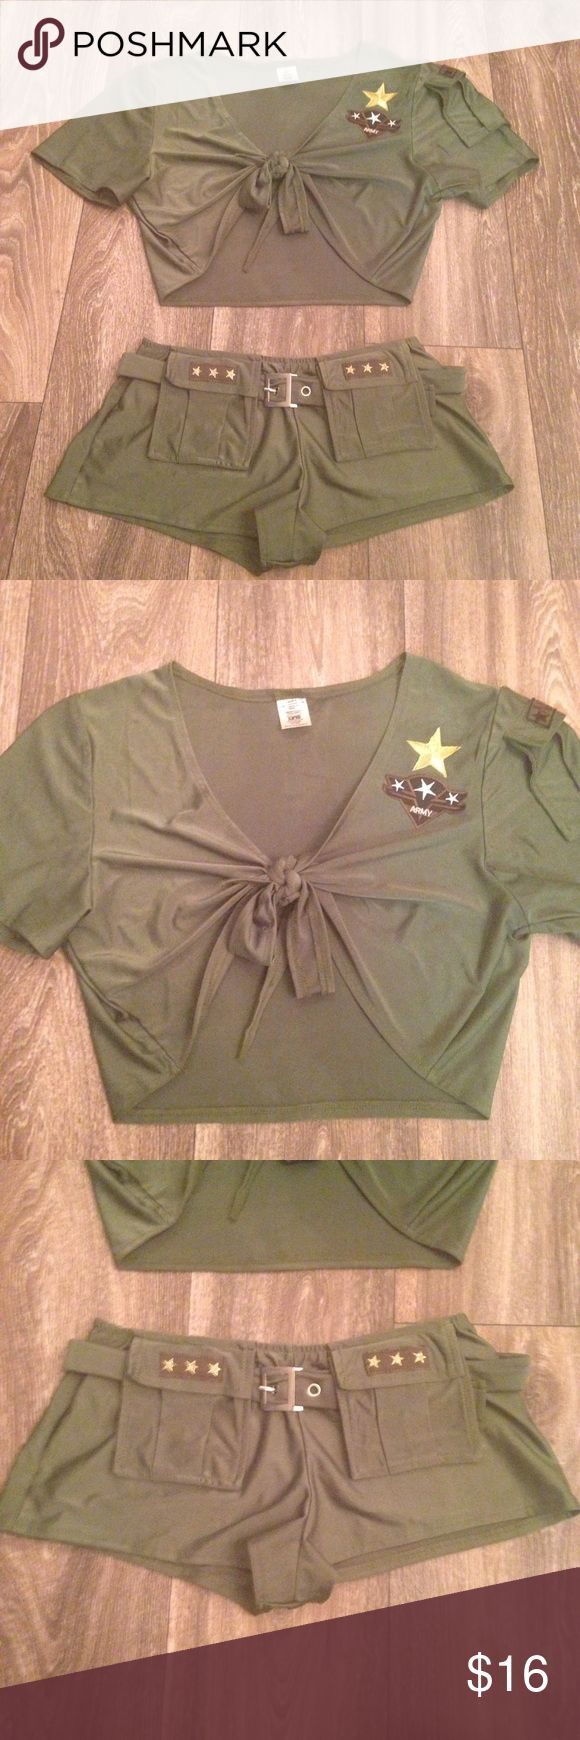 Sexy Army Cadet Costume Lingerie Set Size Medium/Large. I usually wear a medium. Only worn once so it's in great condition. 85% Nylon, 15% Spandex Be Wicked Intimates & Sleepwear